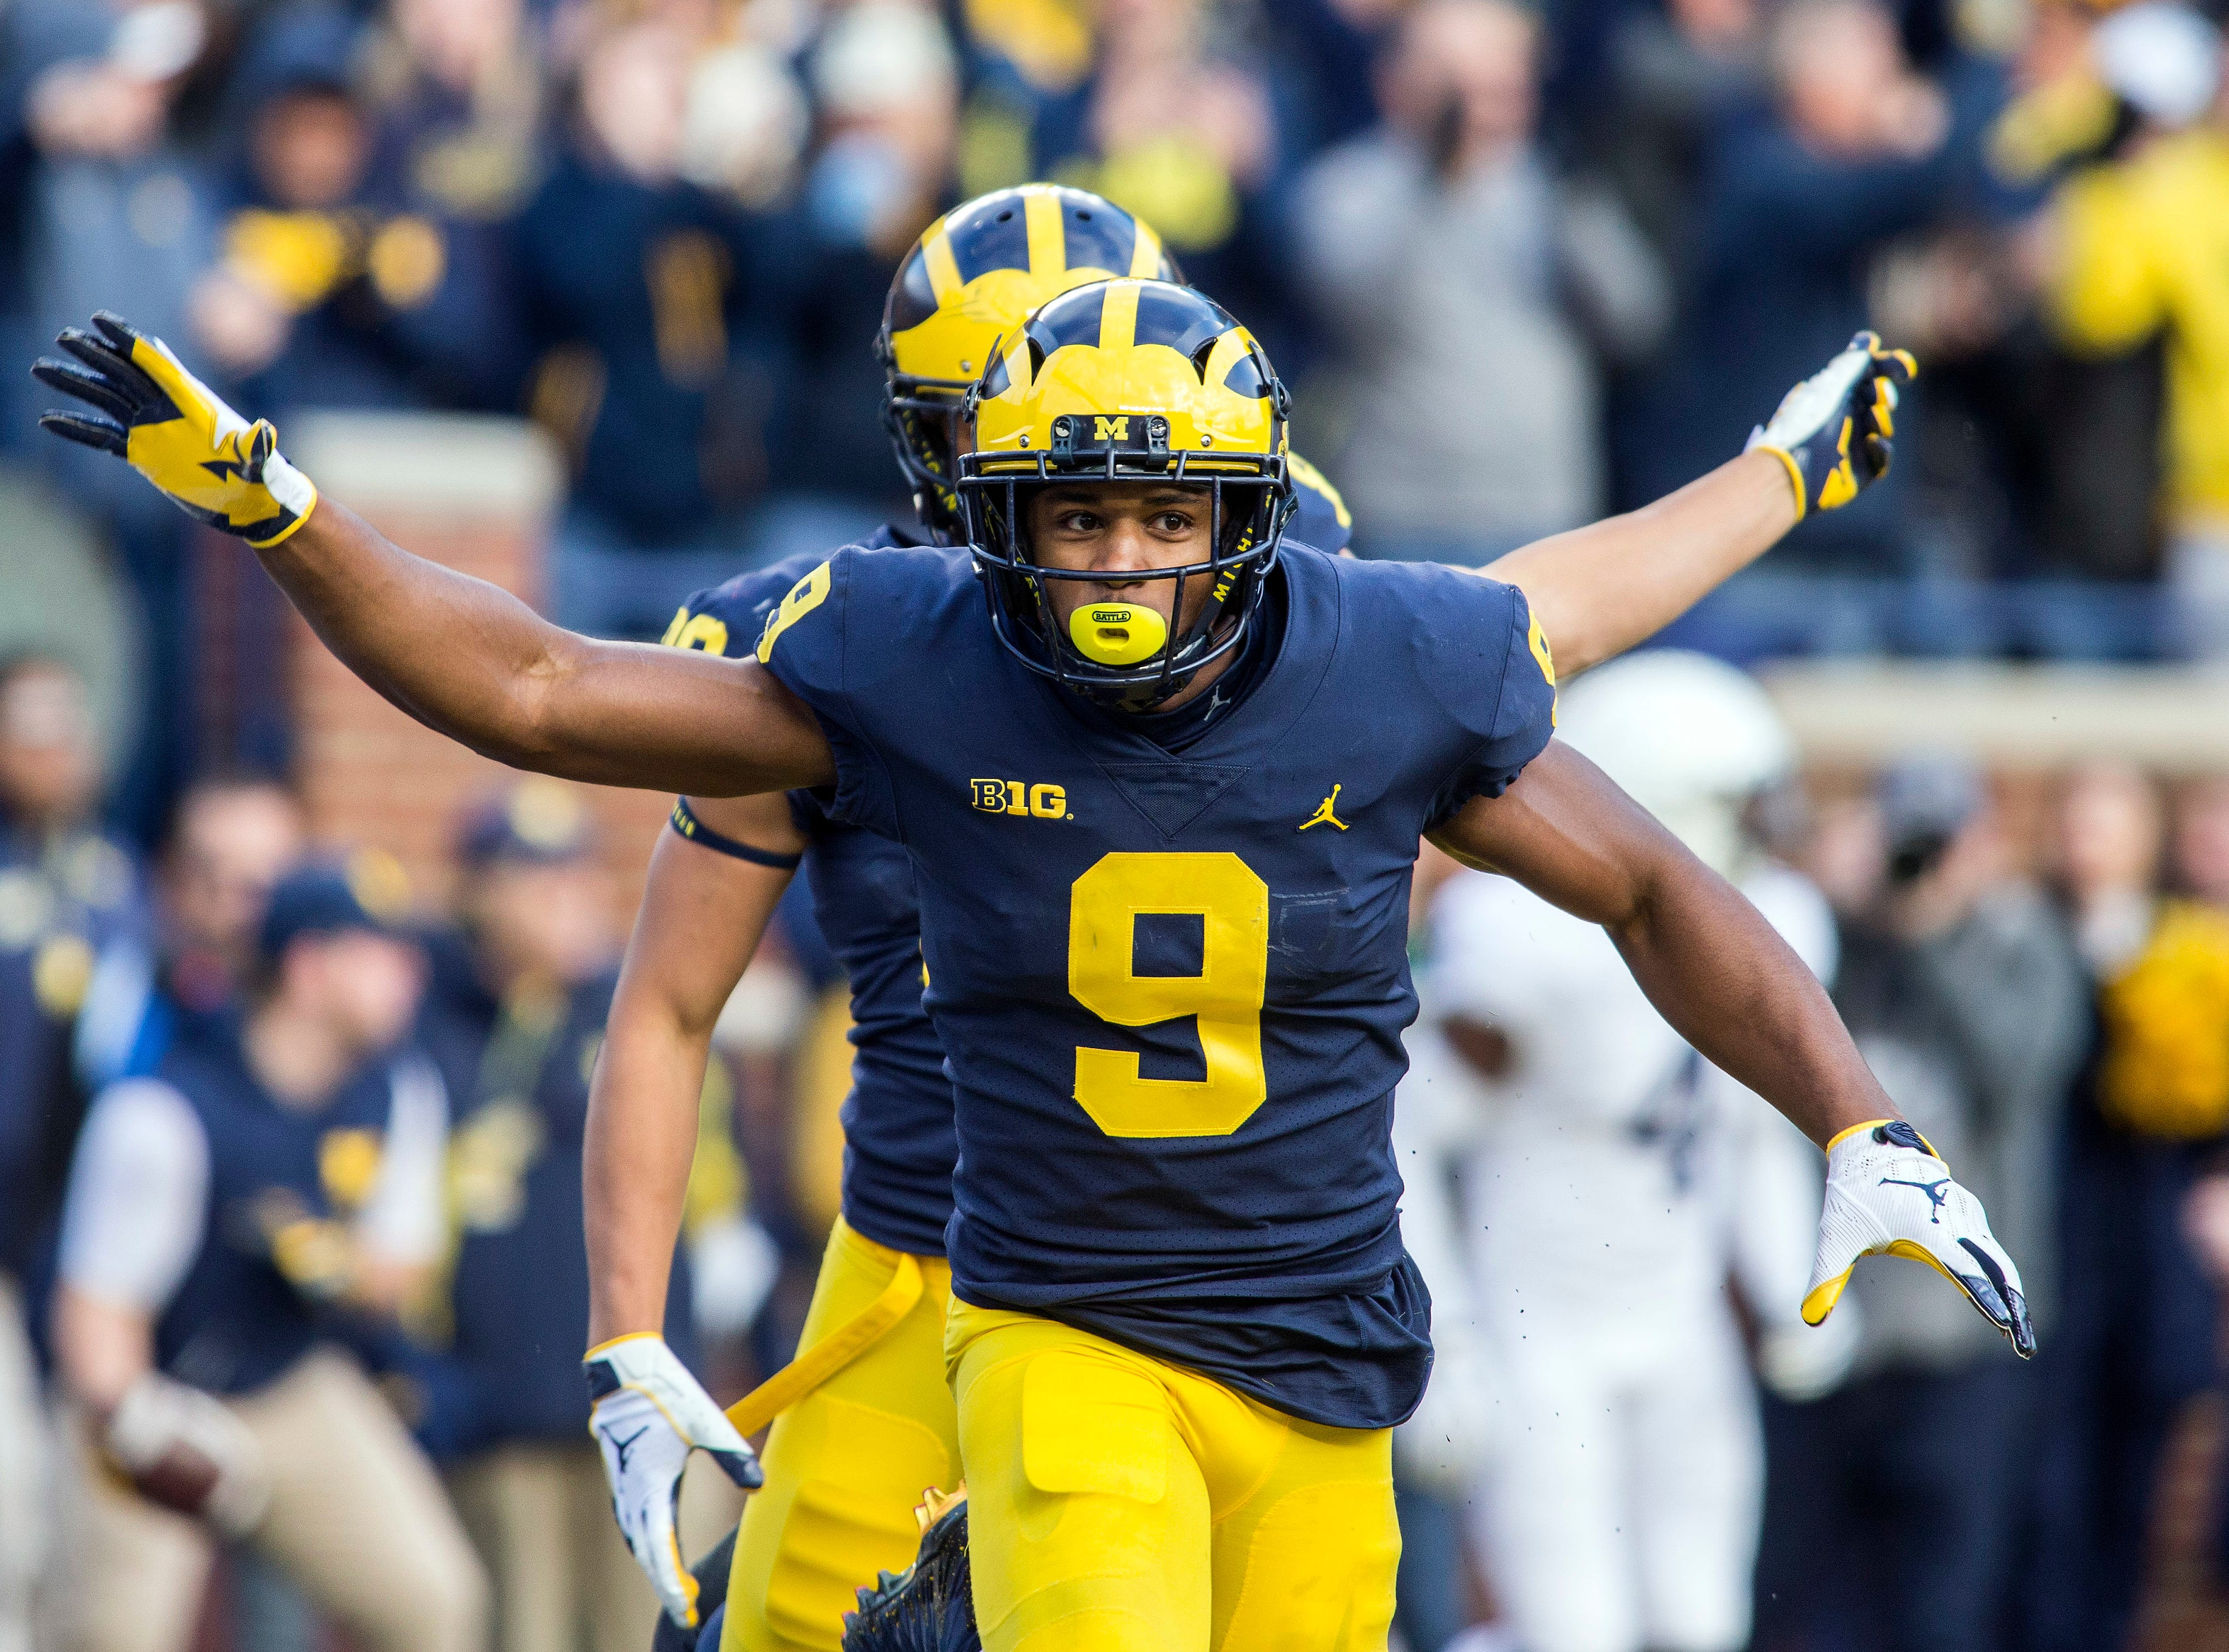 Michigan wide receiver Donovan Peoples-Jones (9) celebrates his touchdown in the second quarter of an NCAA college football game against Penn State in Ann Arbor, Mich., Saturday, Nov. 3, 2018. (AP Photo/Tony Ding)